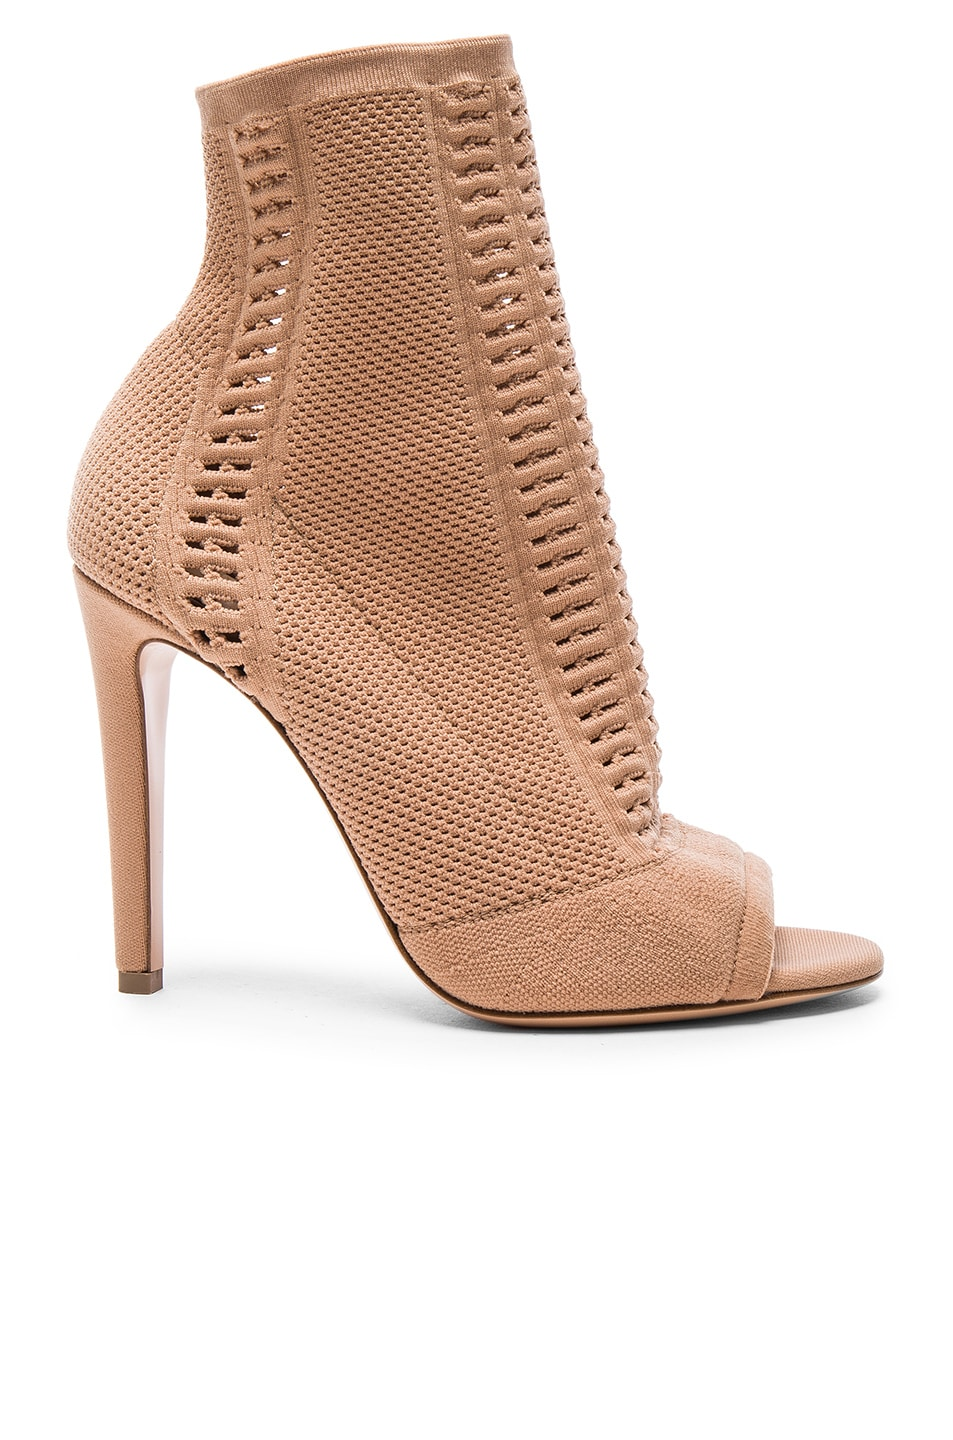 Image 1 of Gianvito Rossi Knit Vires Booties in Praline